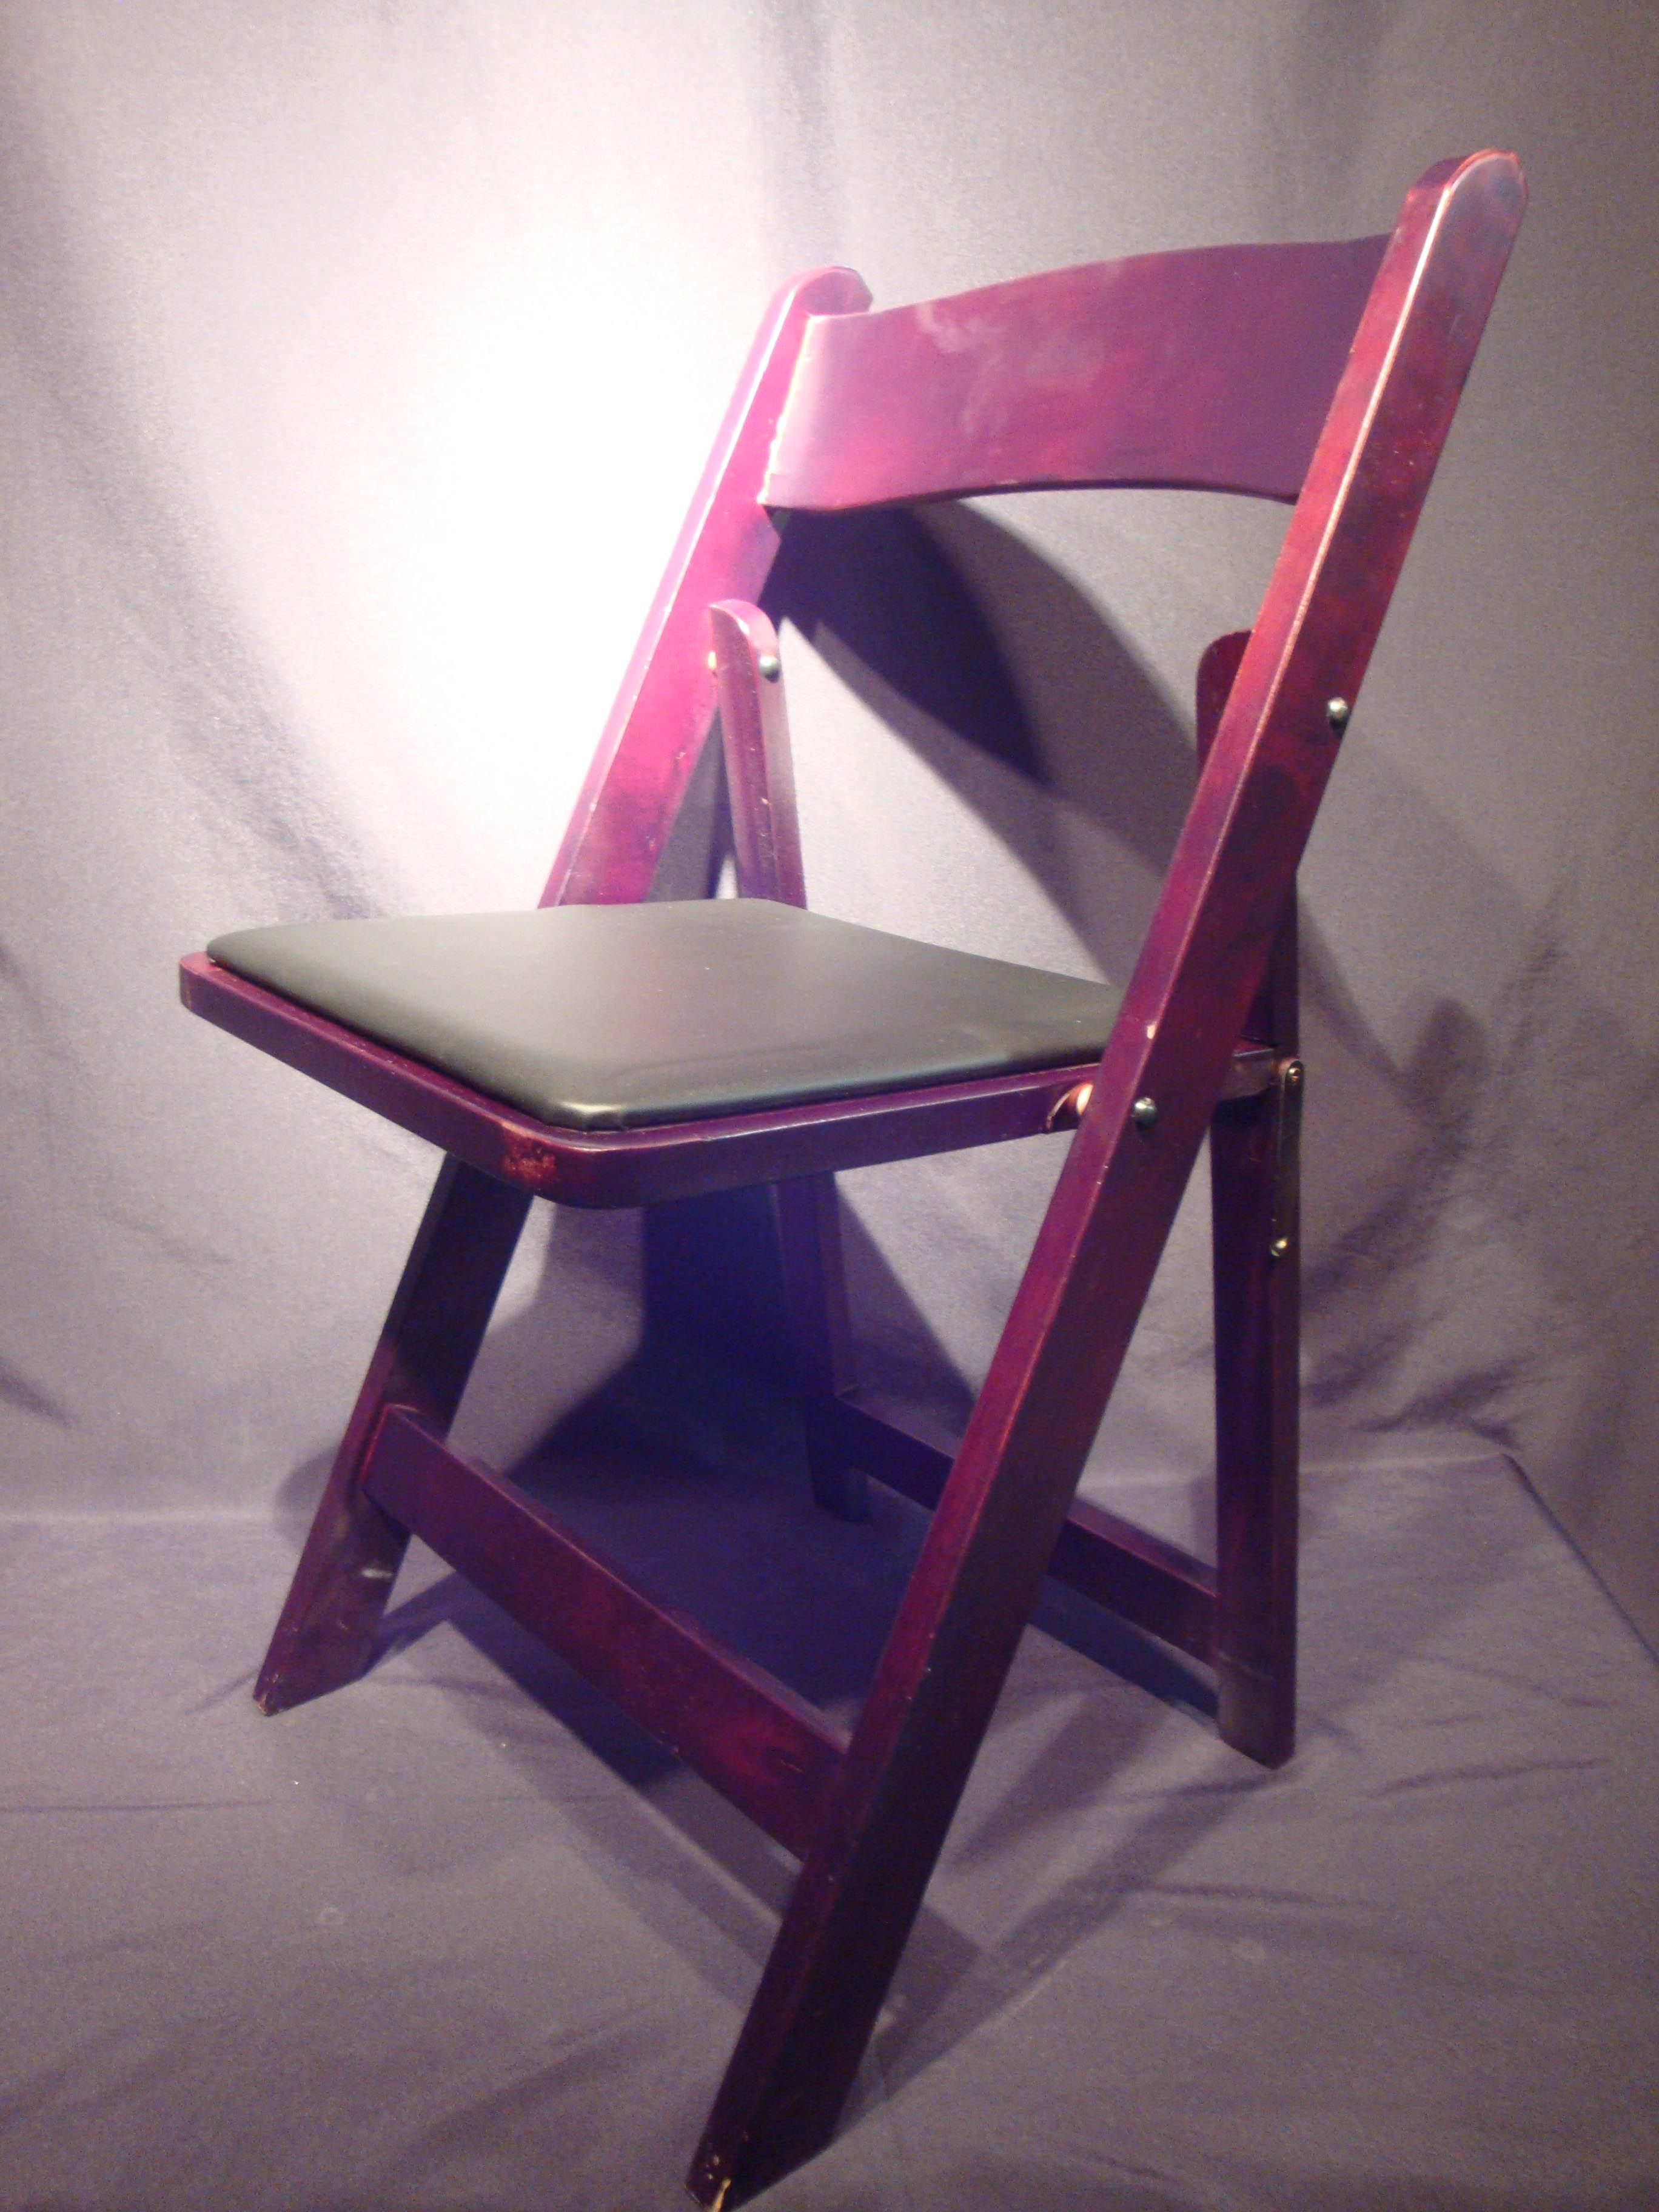 Mahogany Wood Folding Chair with black padded seat